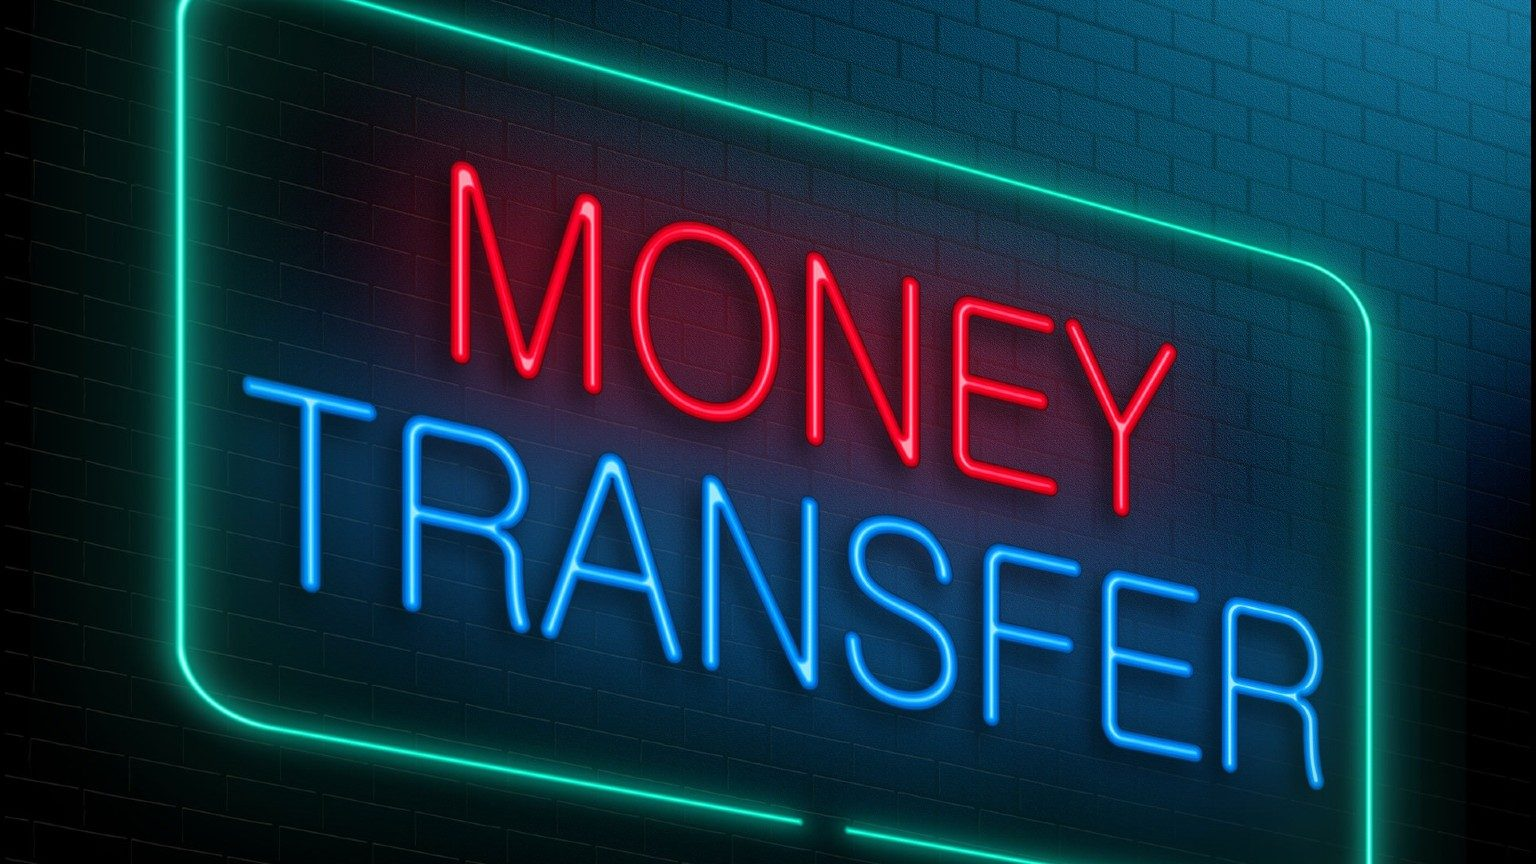 Money Transfer written with led lights